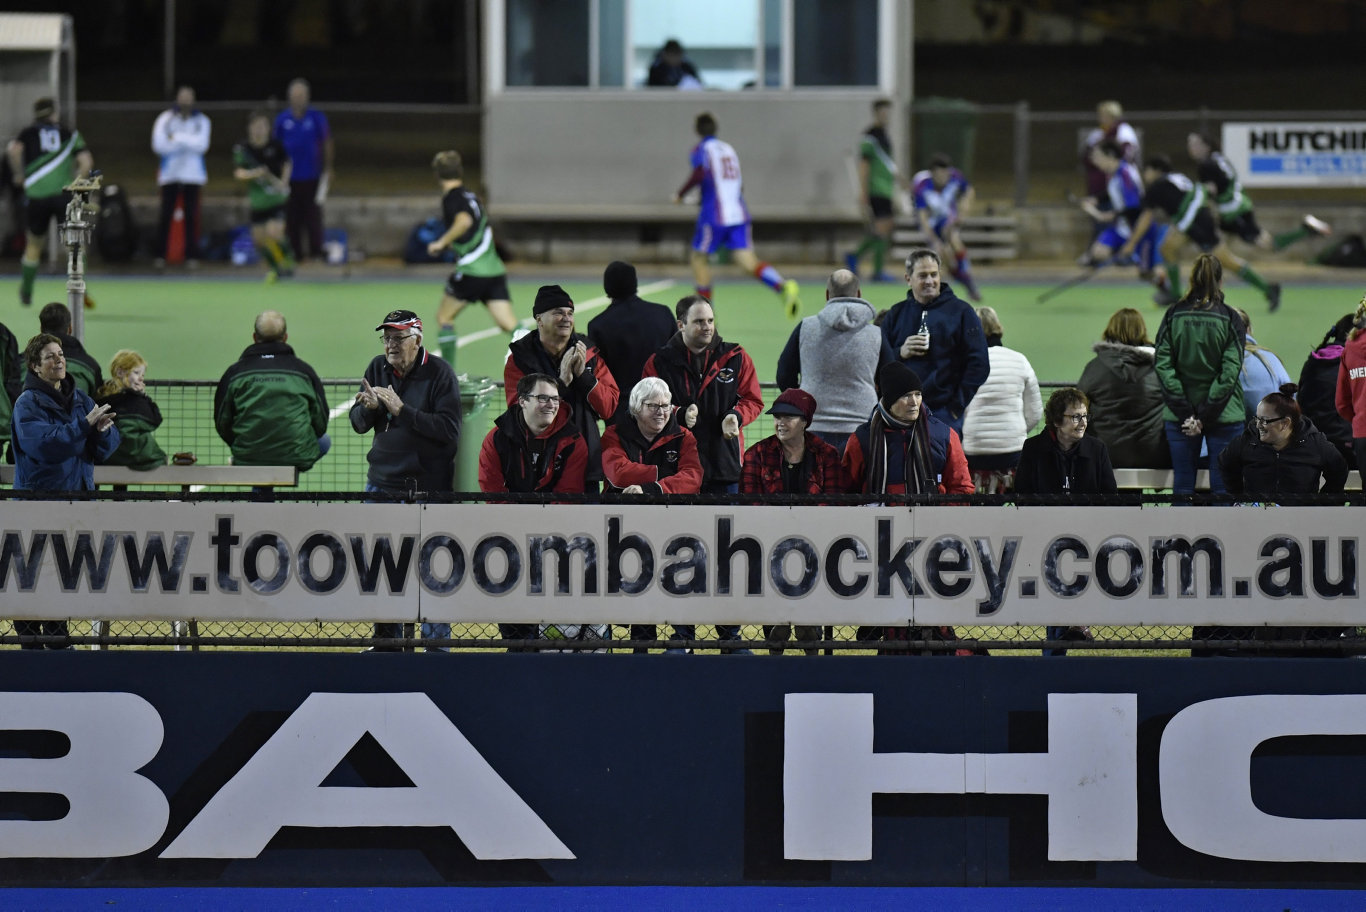 PATIENCE: Toowoomba Hockey will wait for further clarification before cementing a return date.